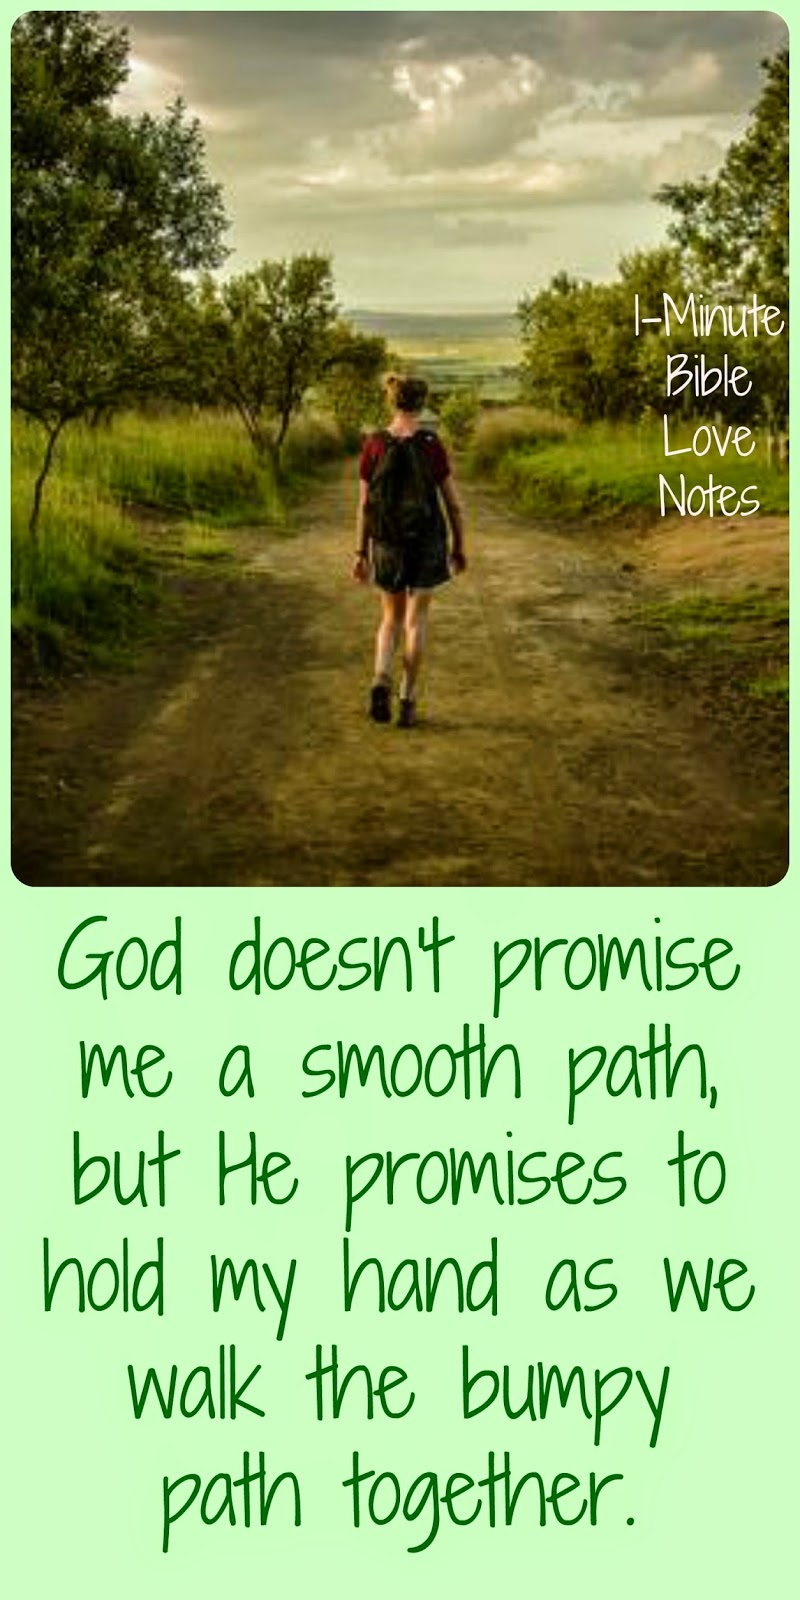 Jeremiah 32:27, God walks the bumpy path with us